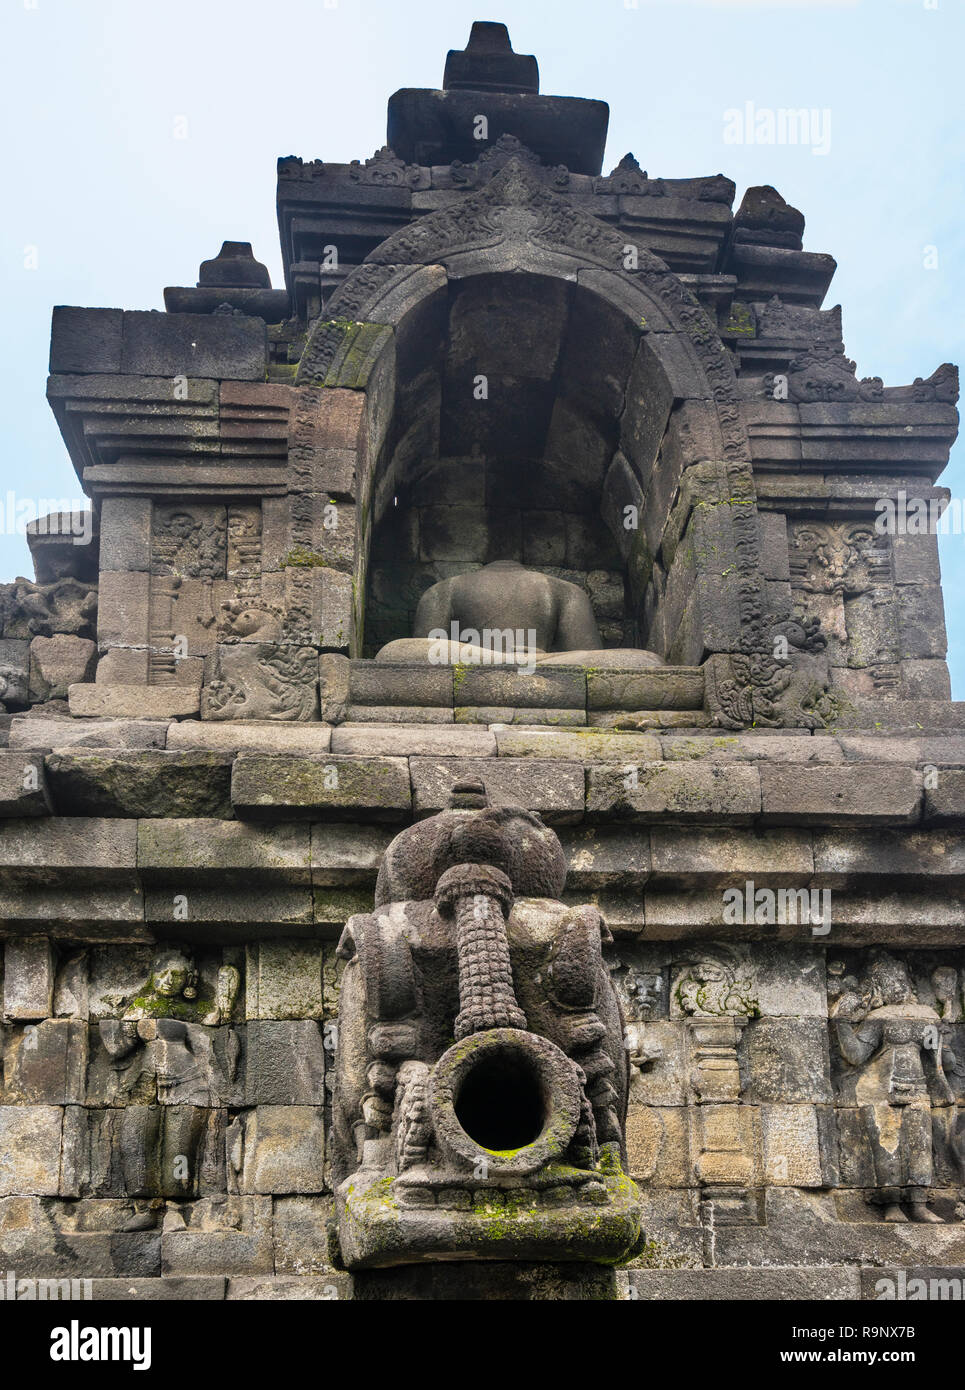 carved stormwater spout below a headless sitting Buddha statue in a niche at 9th century Borobudur Mahayana Buddhist temple, Central Java, Indonesia - Stock Image